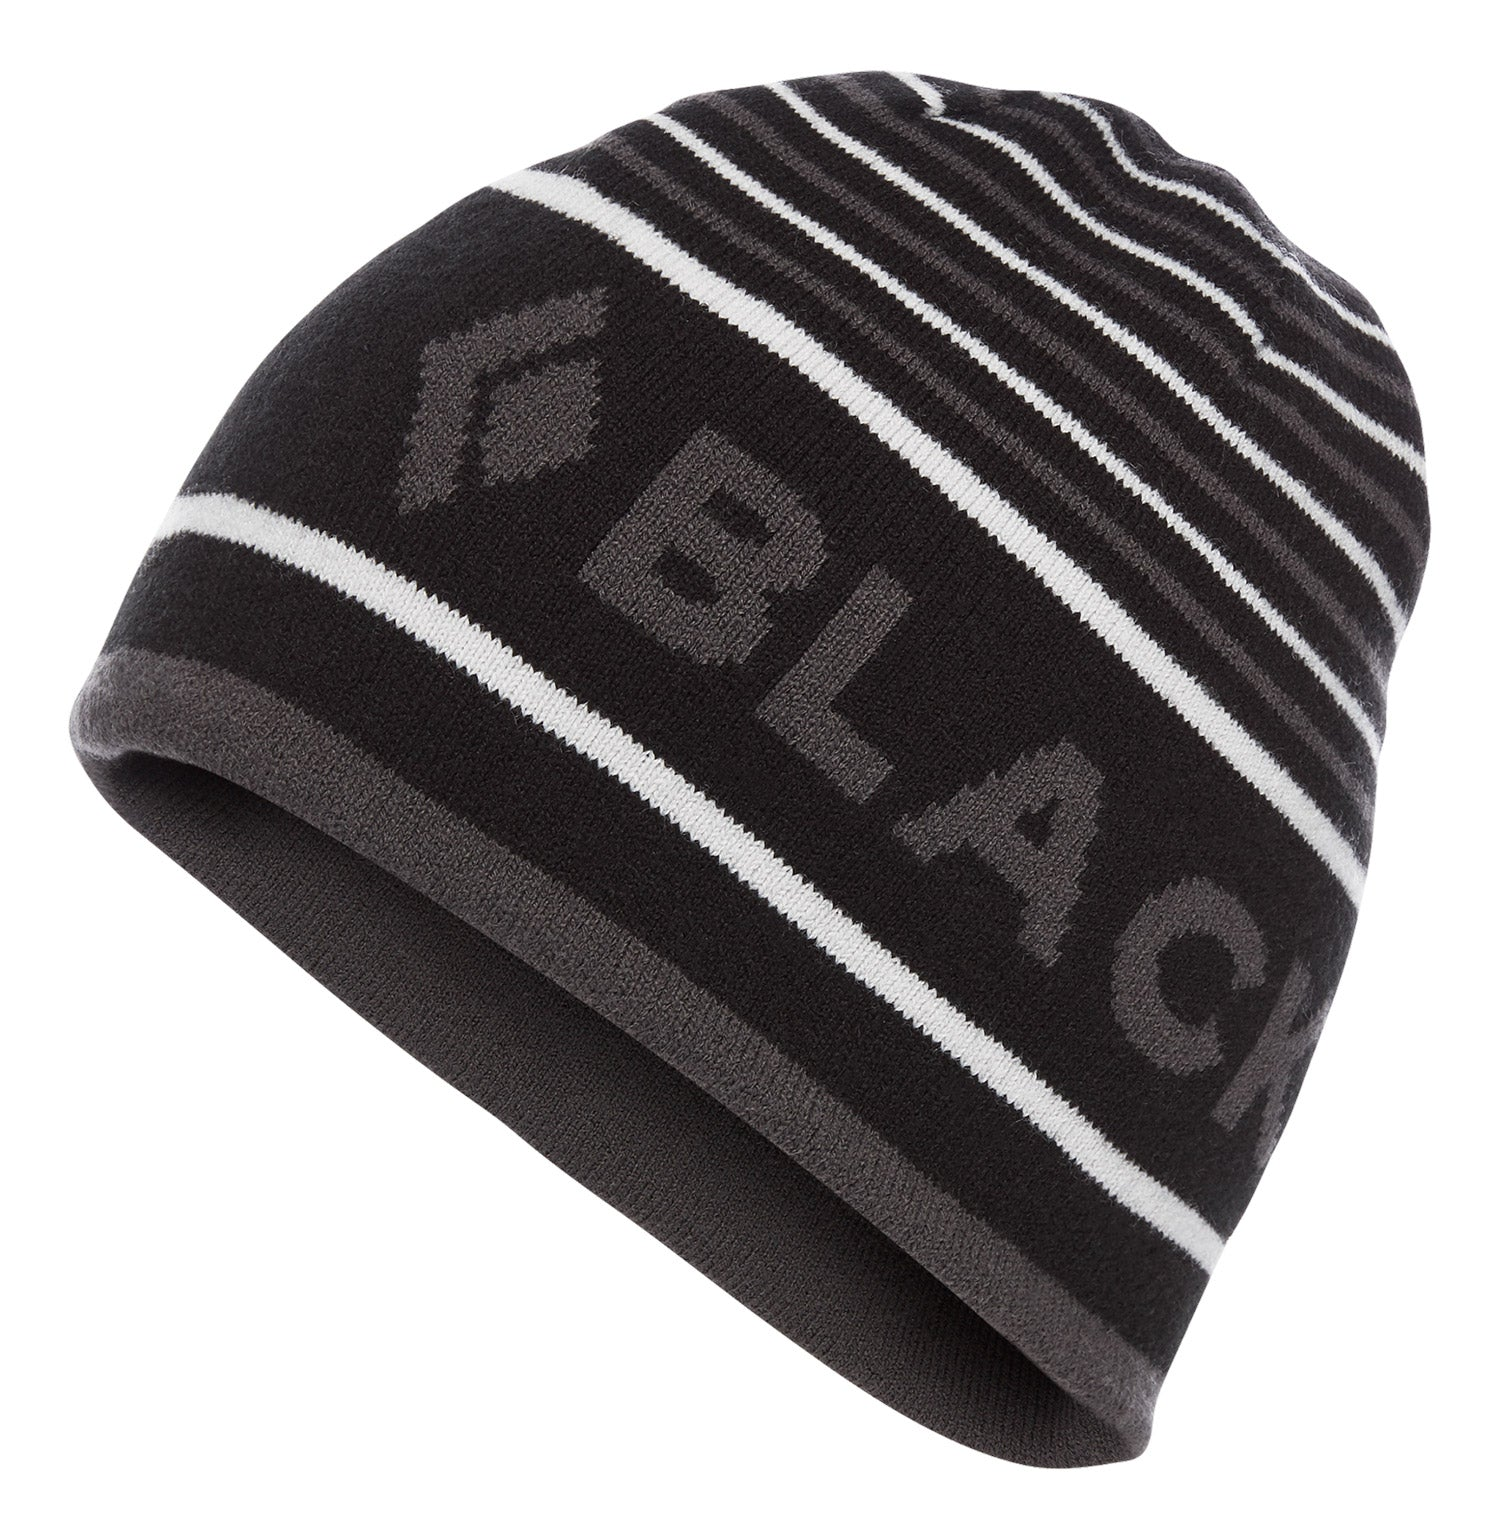 a black diamond brand beanie in black-anthracite-alloy, outside view